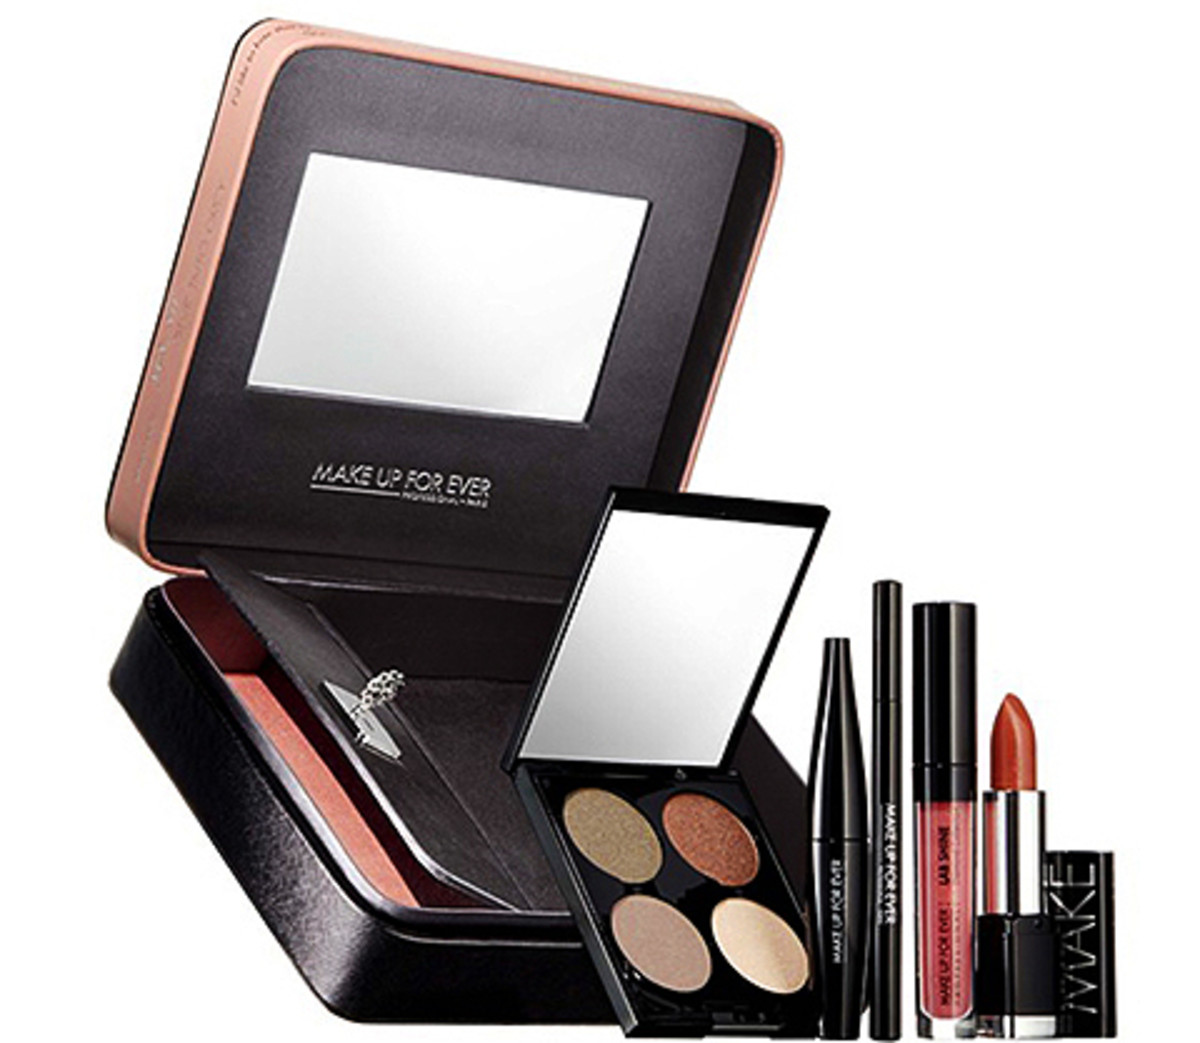 make up for Ever_50 Shades collections_eye and lip set w keepsake box